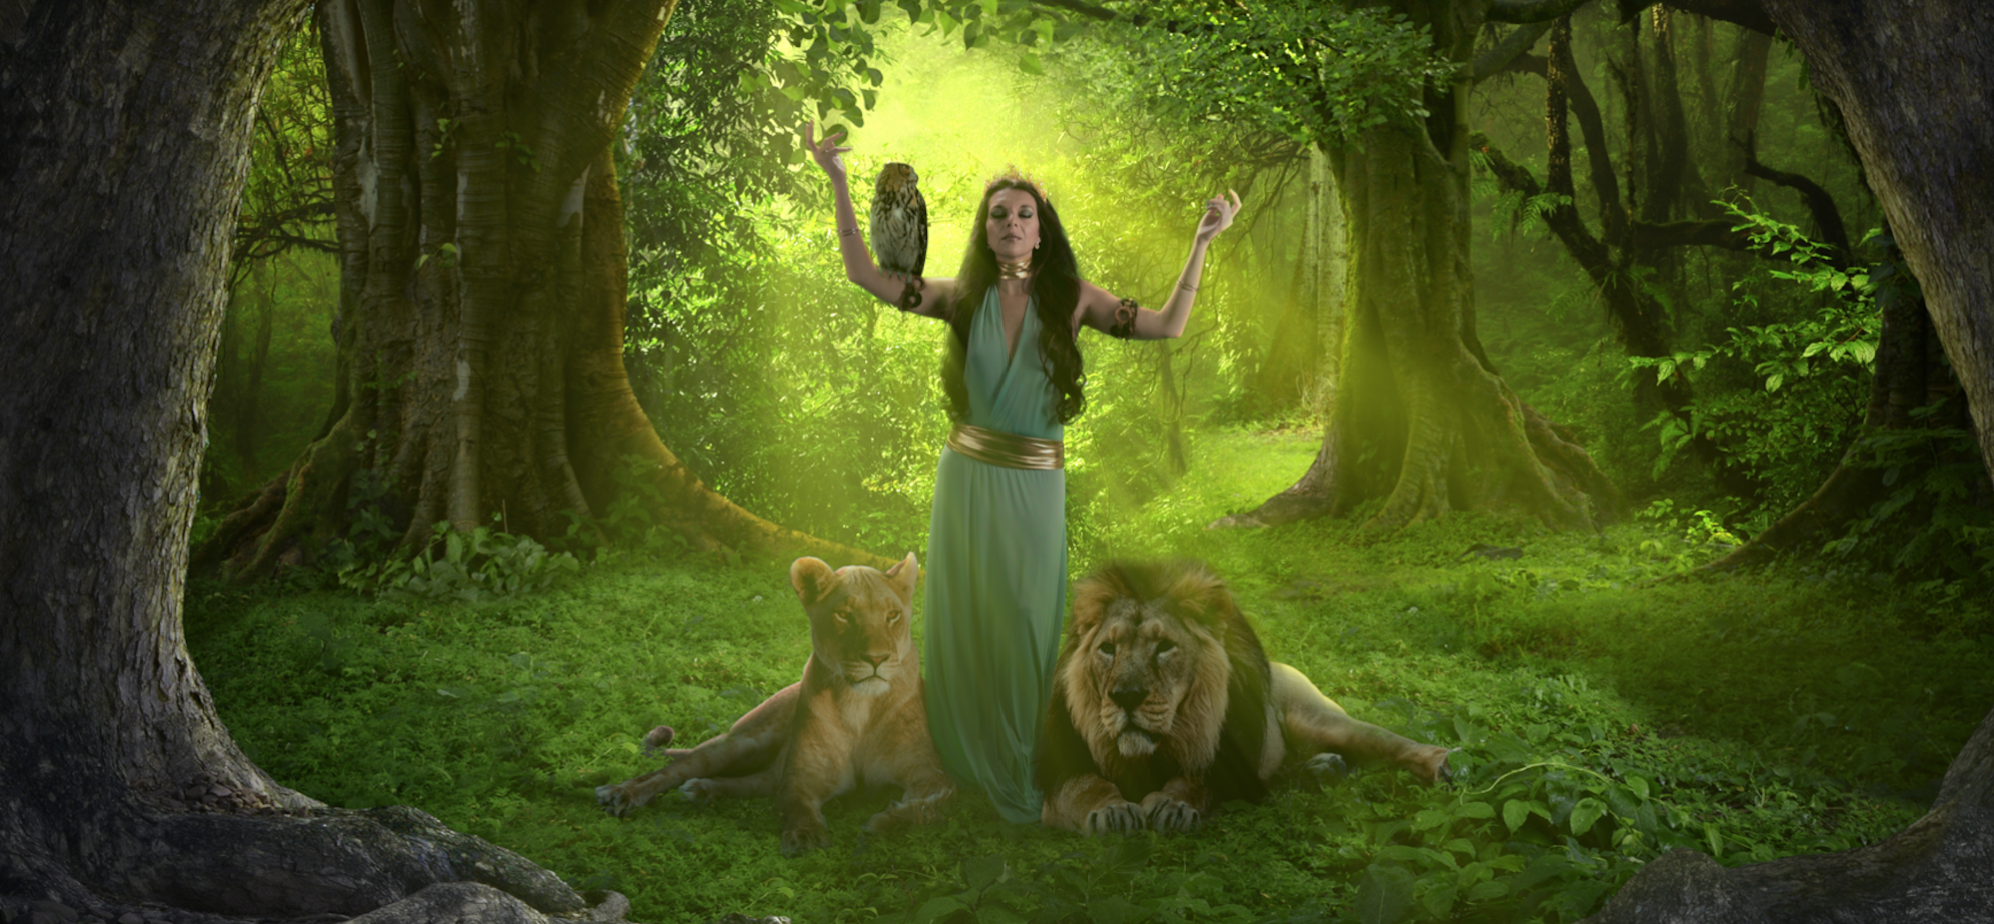 Inanna - Womens nurturing  empathetic qualities are very much